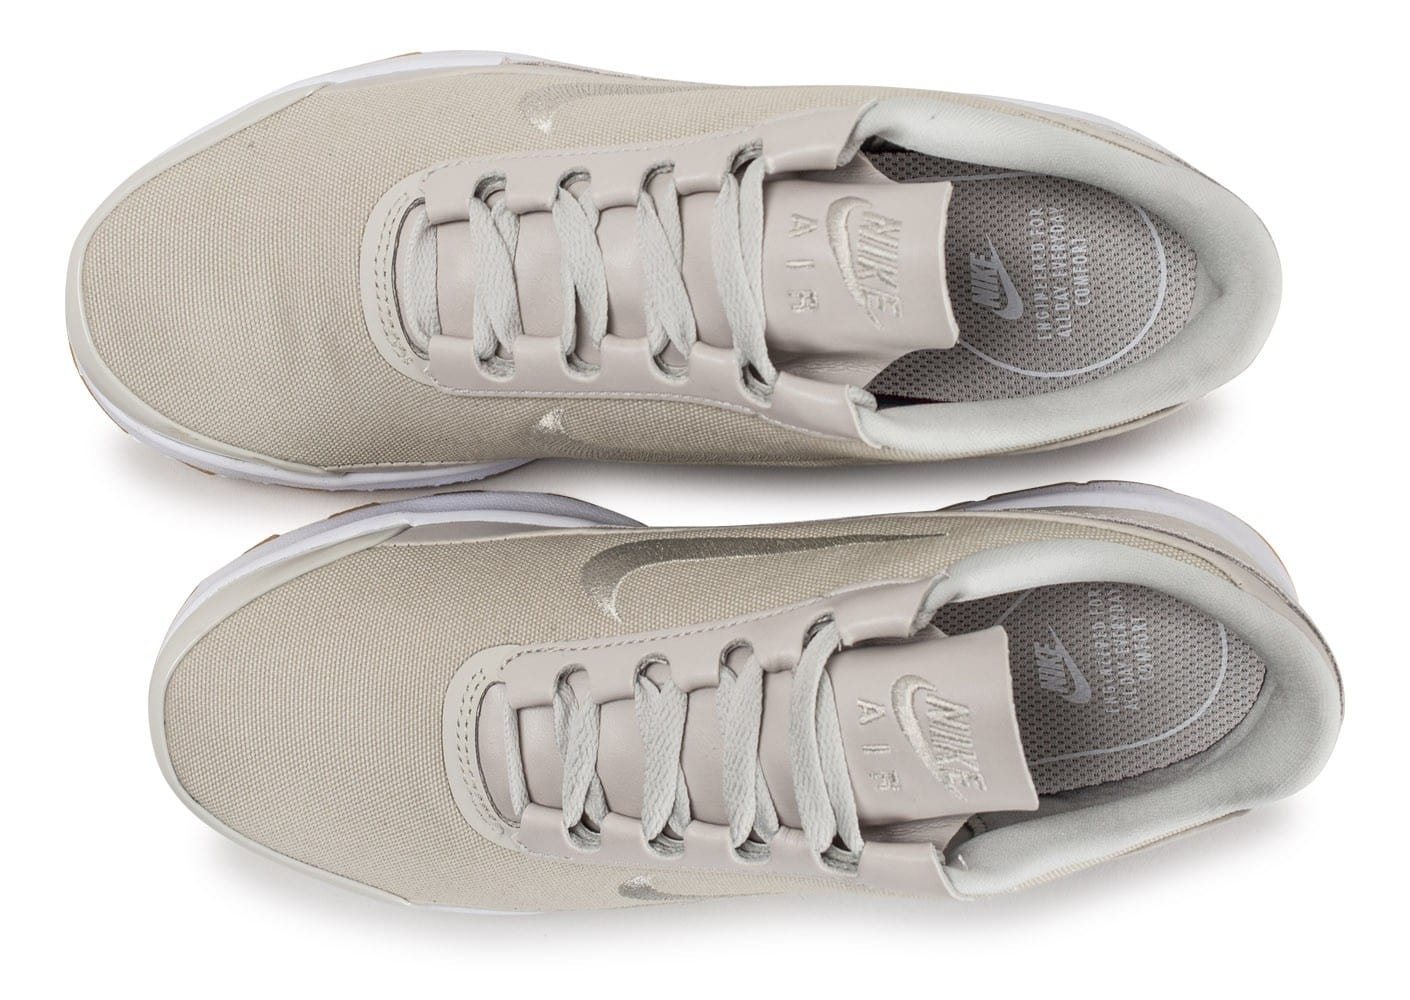 on sale 8f983 c7632 Beige Se Air Max Chaussures Femme Nike Jewell Chausport Baskets xIpCTwd